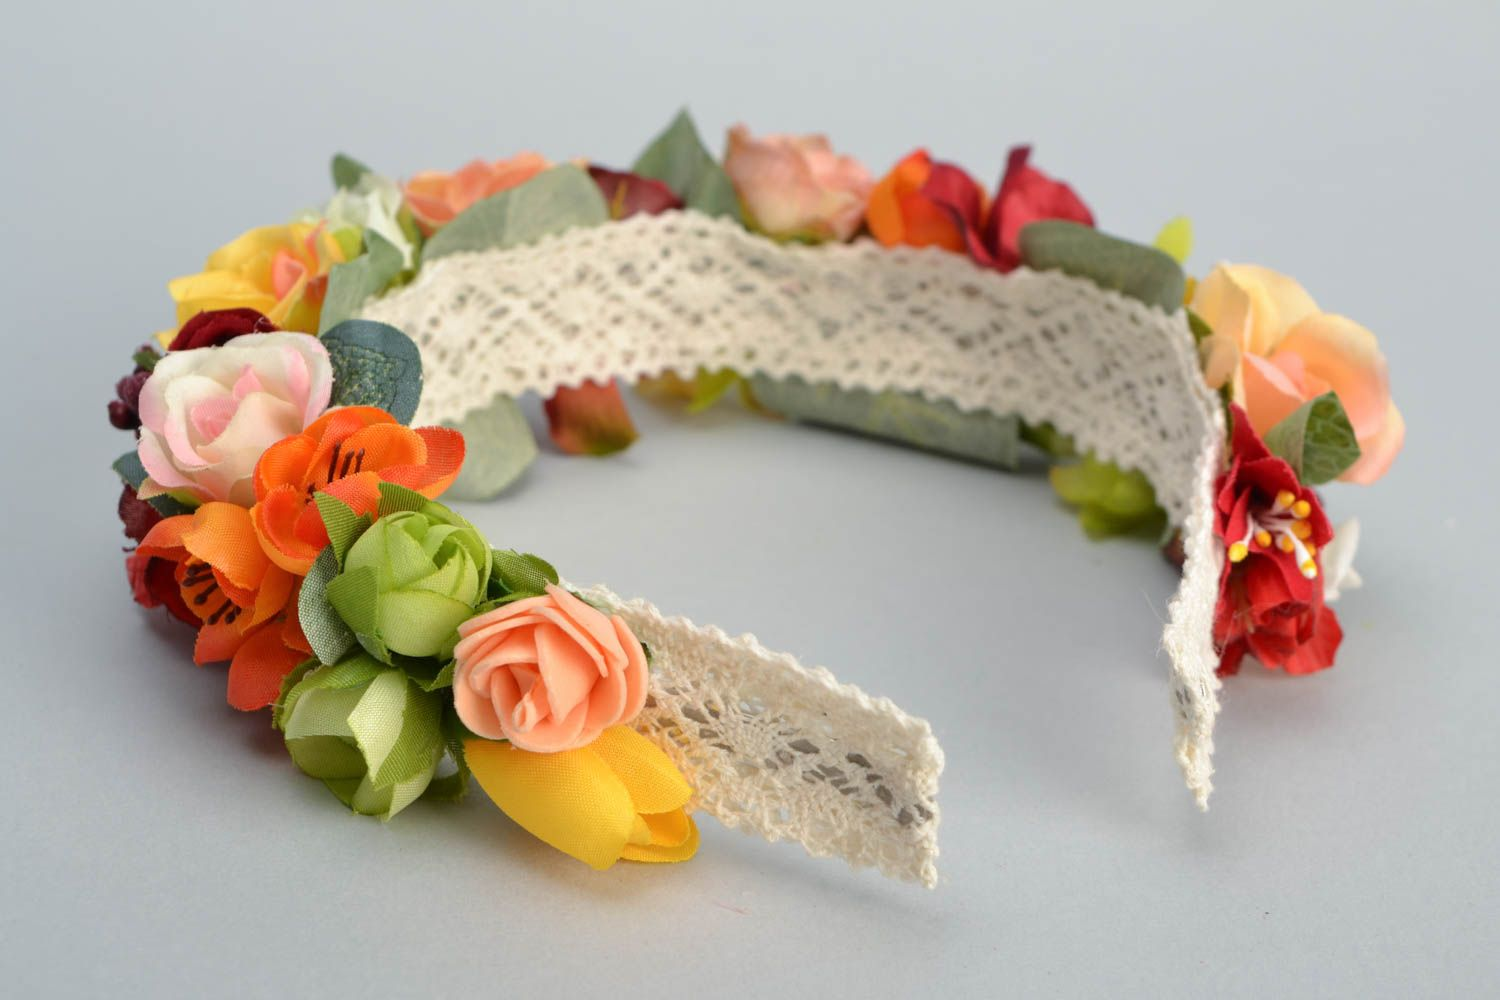 Floral headband made of foamiran and lace photo 5